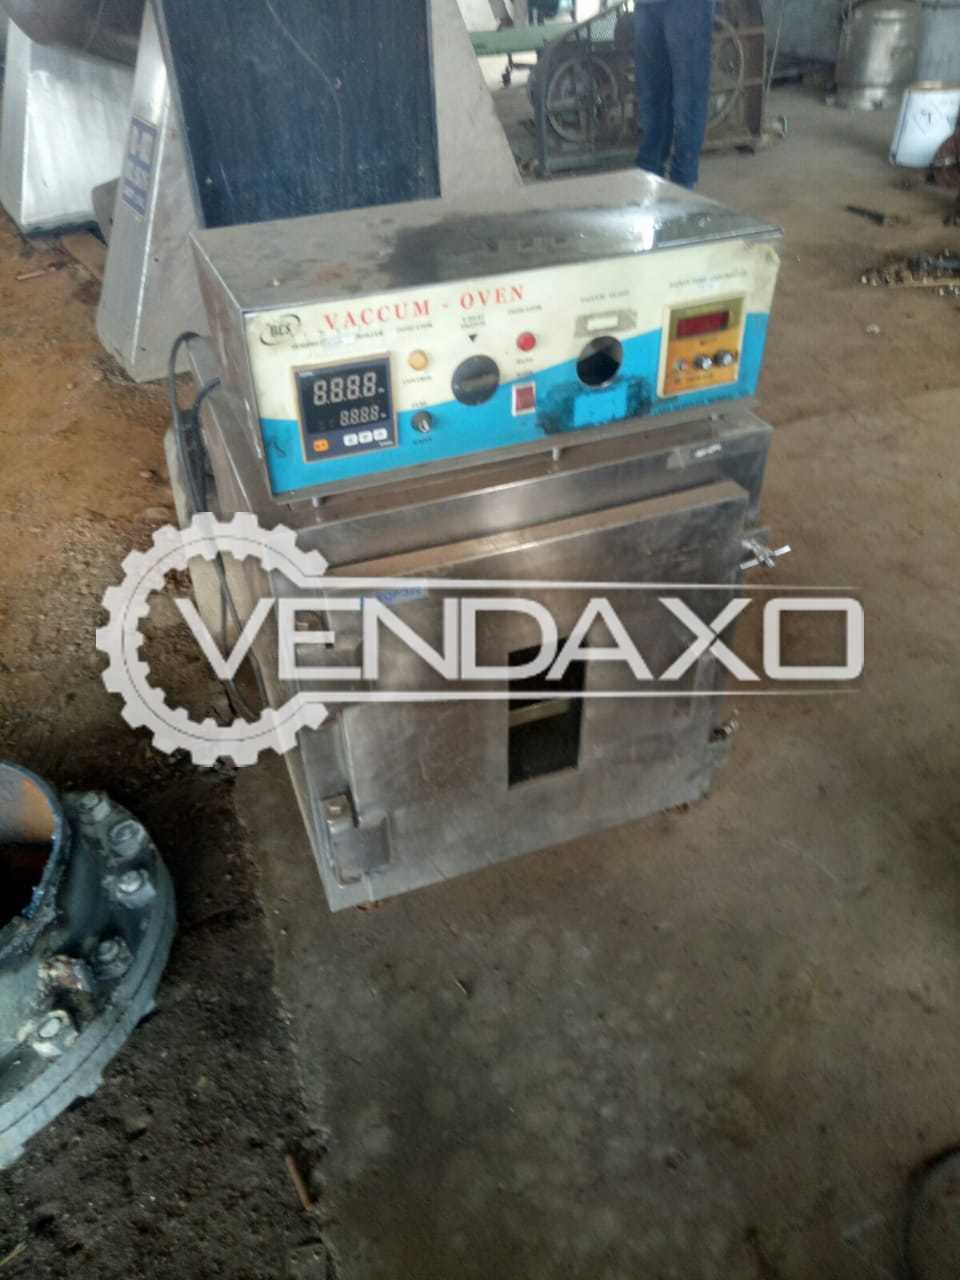 SS Vaccum Oven - 3 Tray Dryer